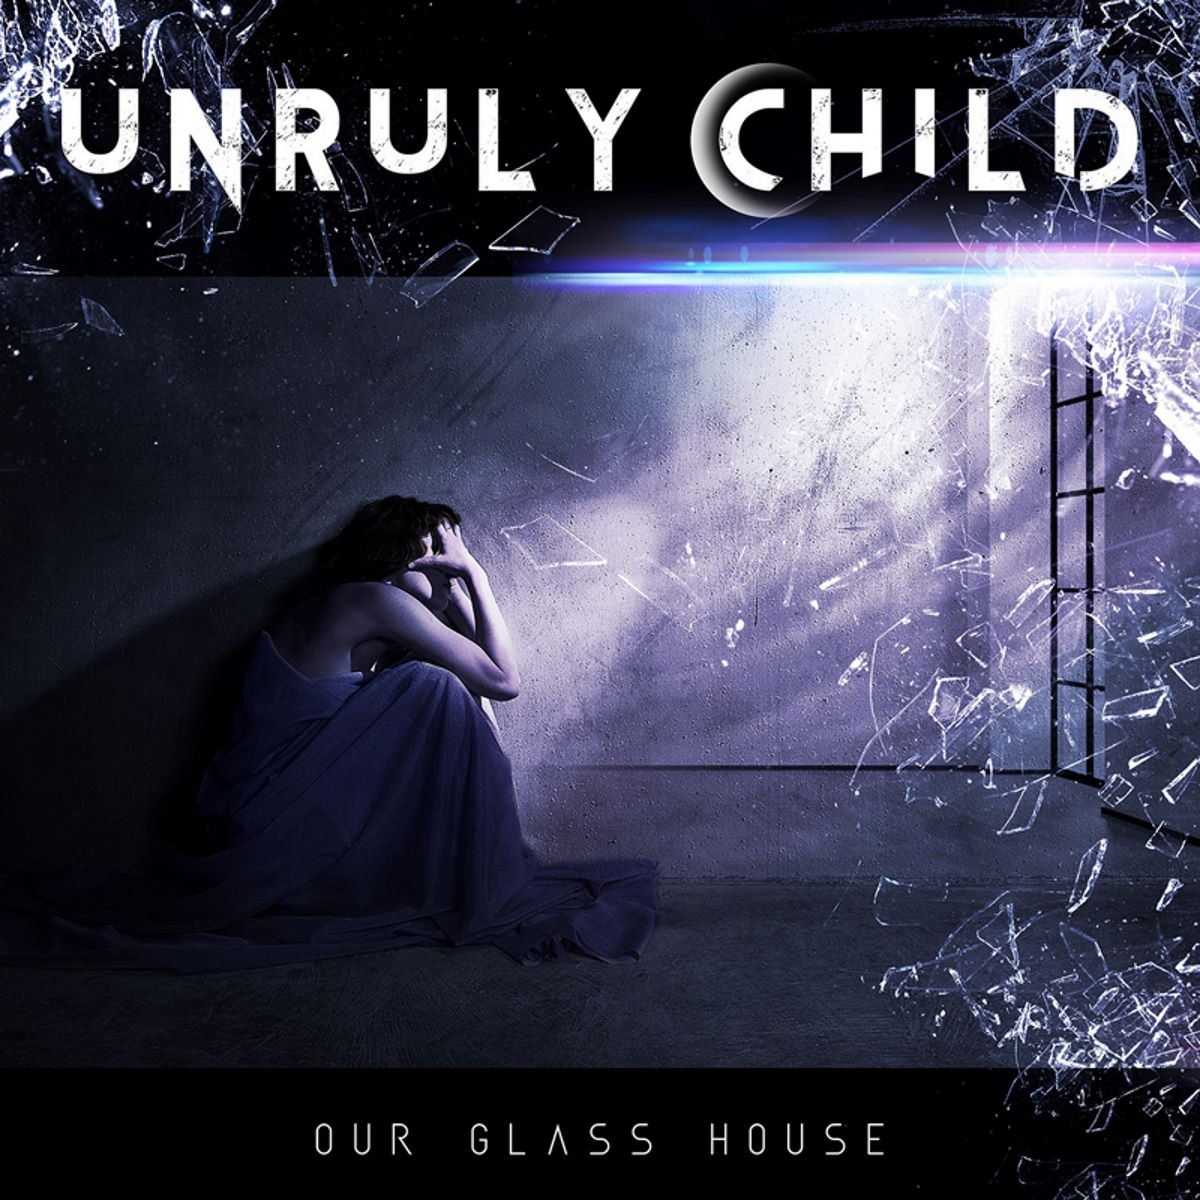 unruly child - our glass house - album cover